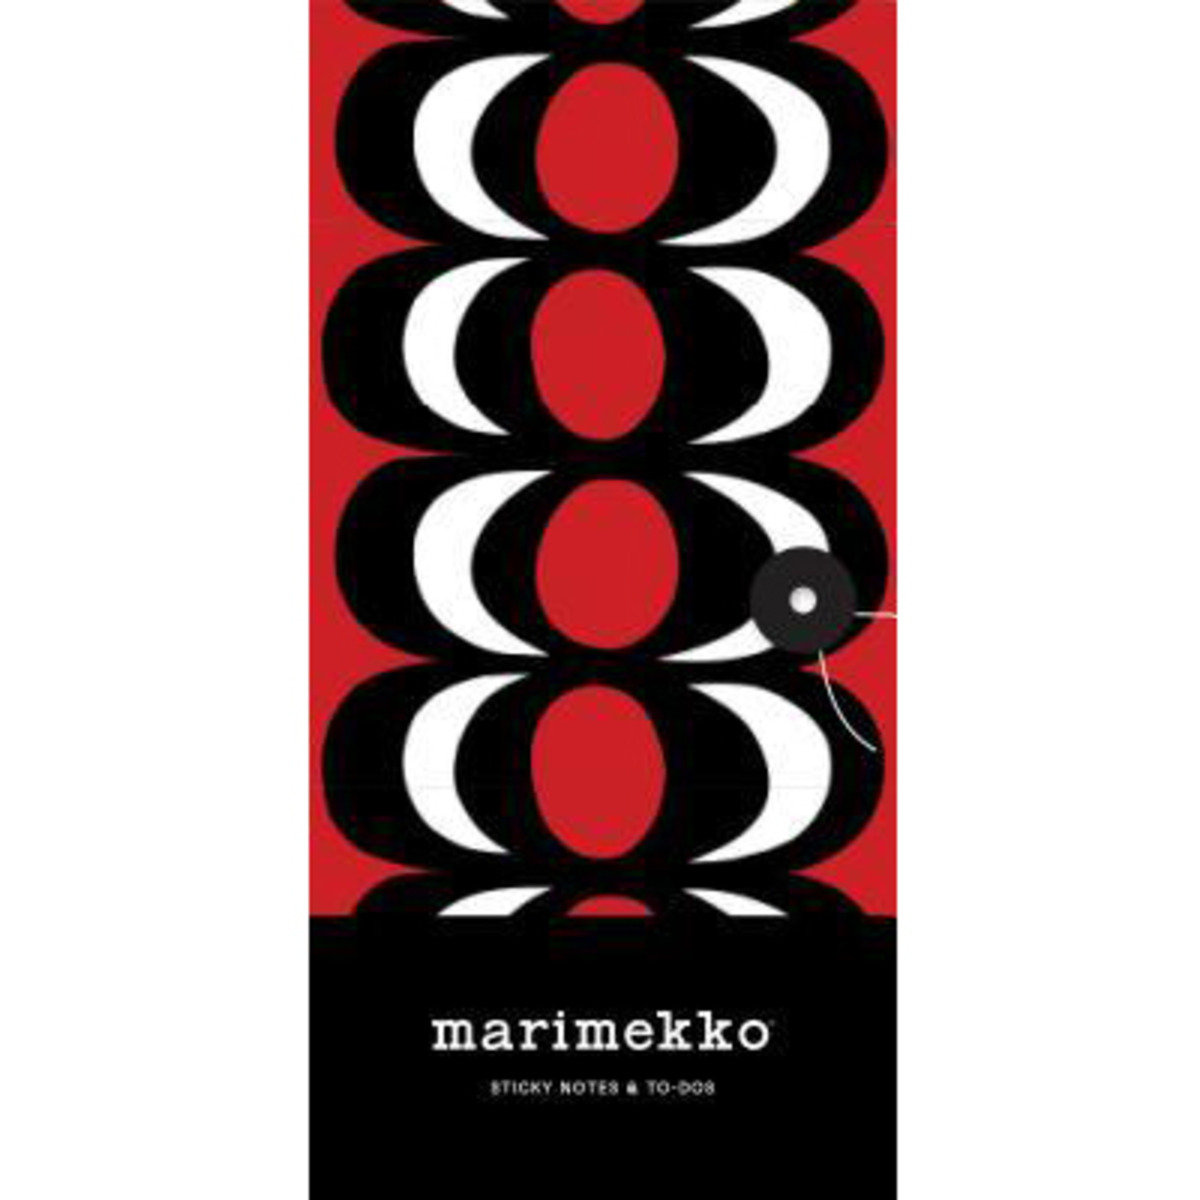 Marimekko Sticky Notes and to-DOS